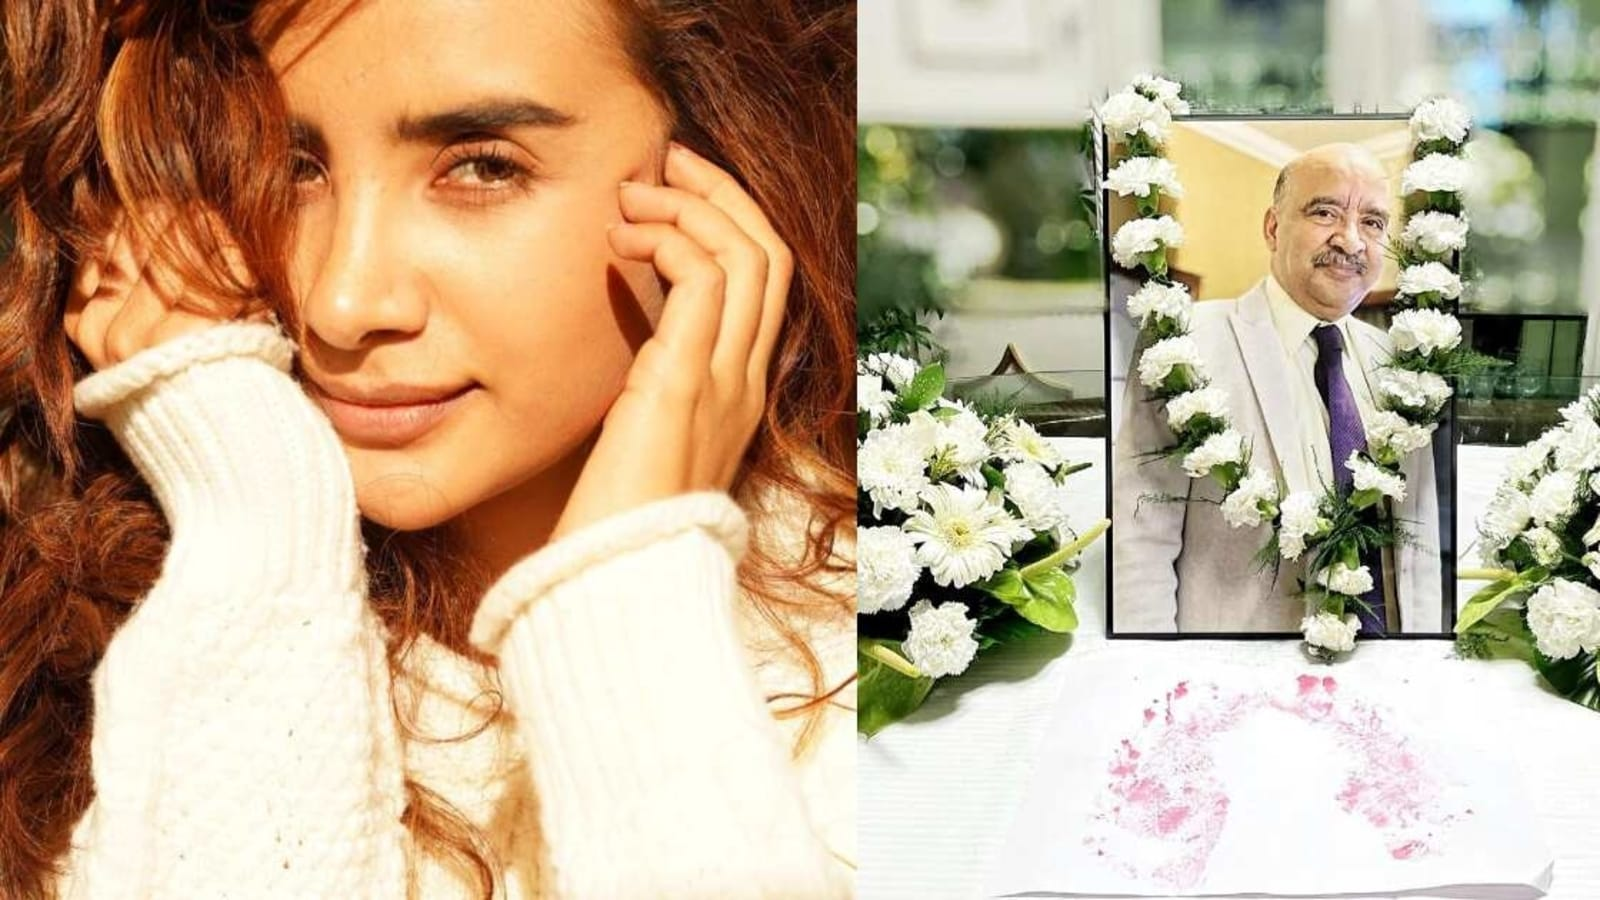 Patralekhaa mourns the loss of her father: 'You just left without saying anything Papa' - Hindustan Times